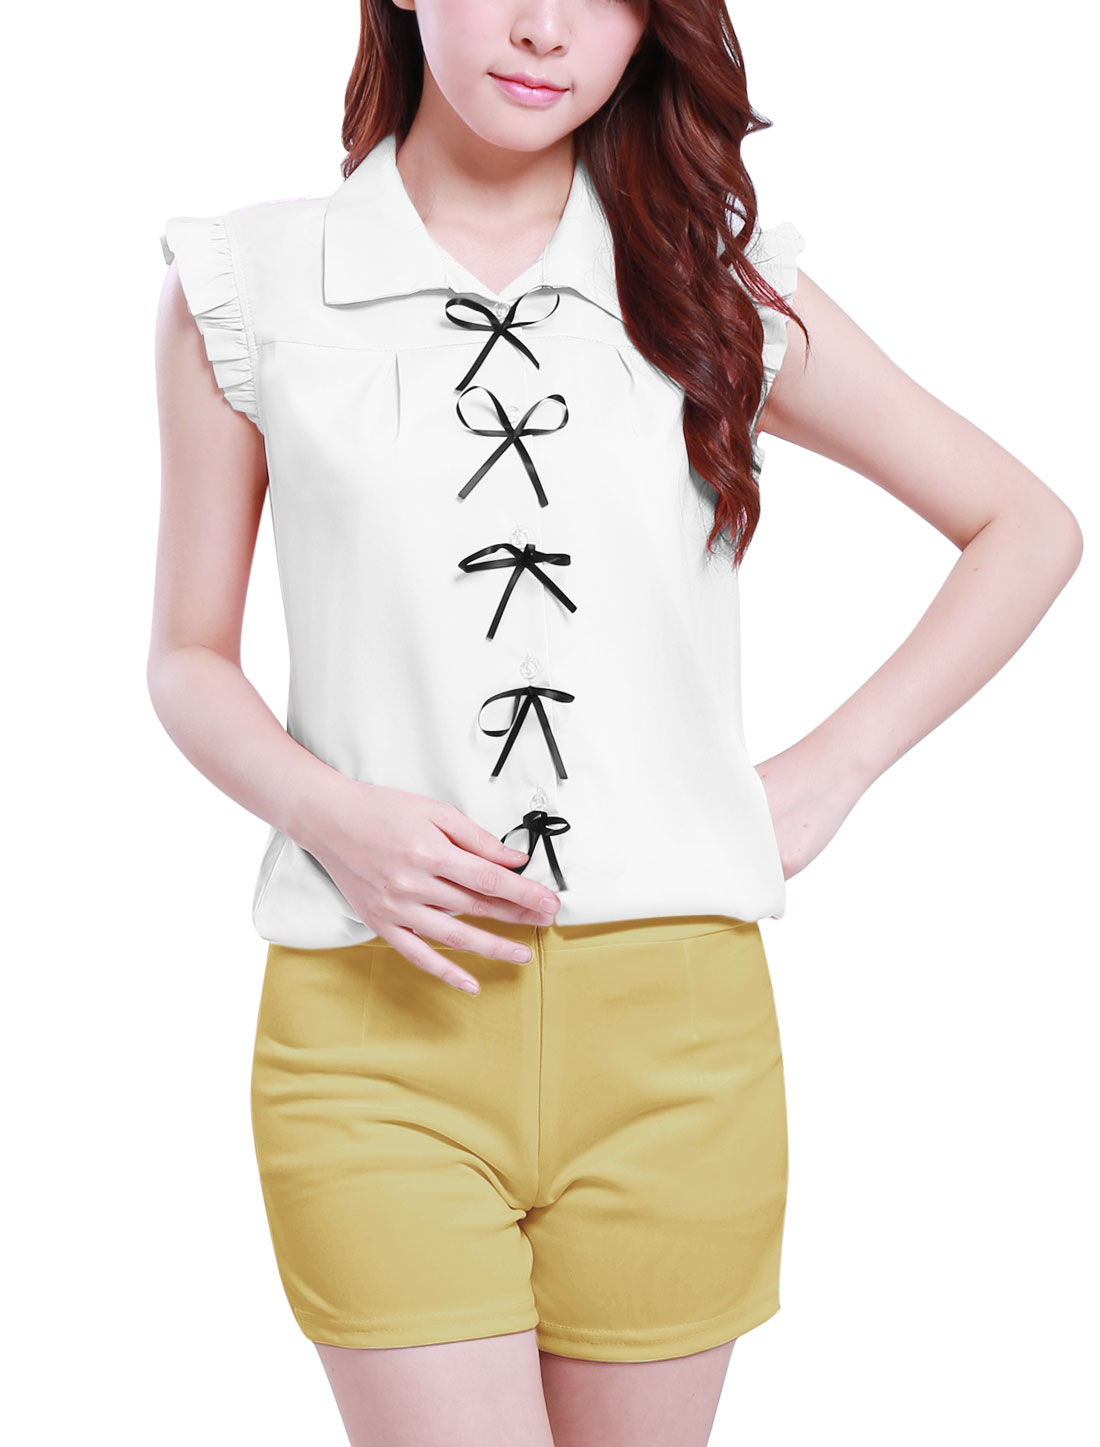 Single-Breasted Front Bowknot Decor White Casual Blouse L for Lady